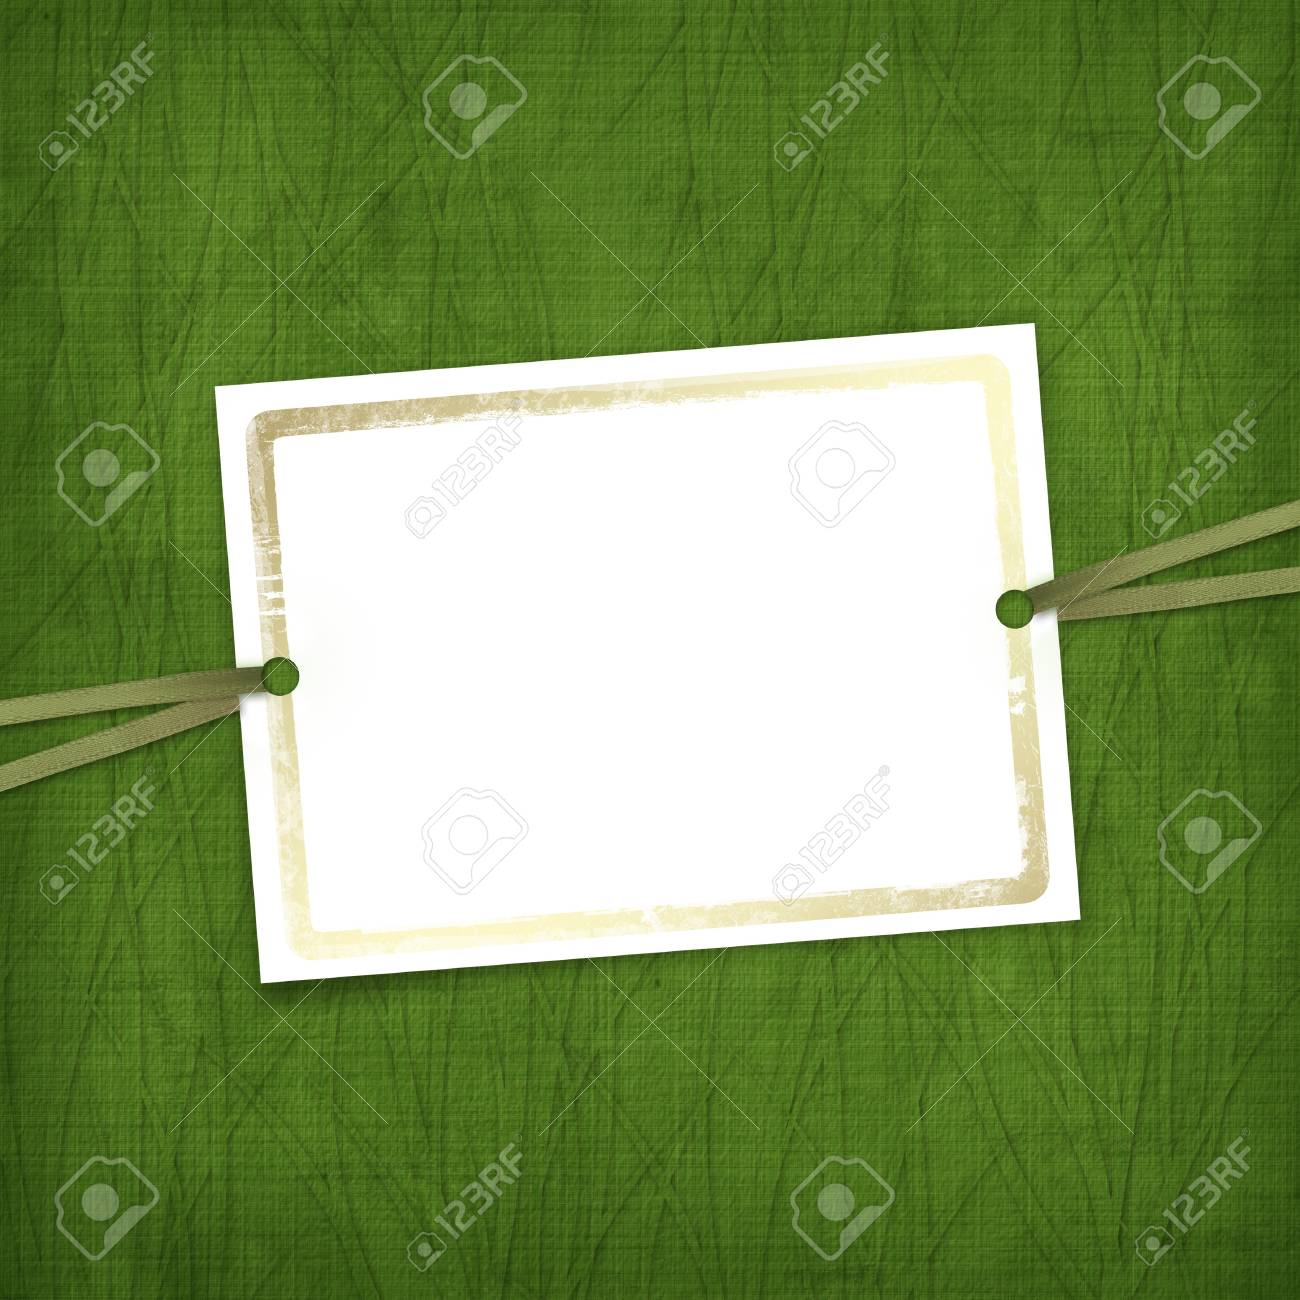 Old invitation for holiday with ribbons on the grunge background Stock Photo - 4337679